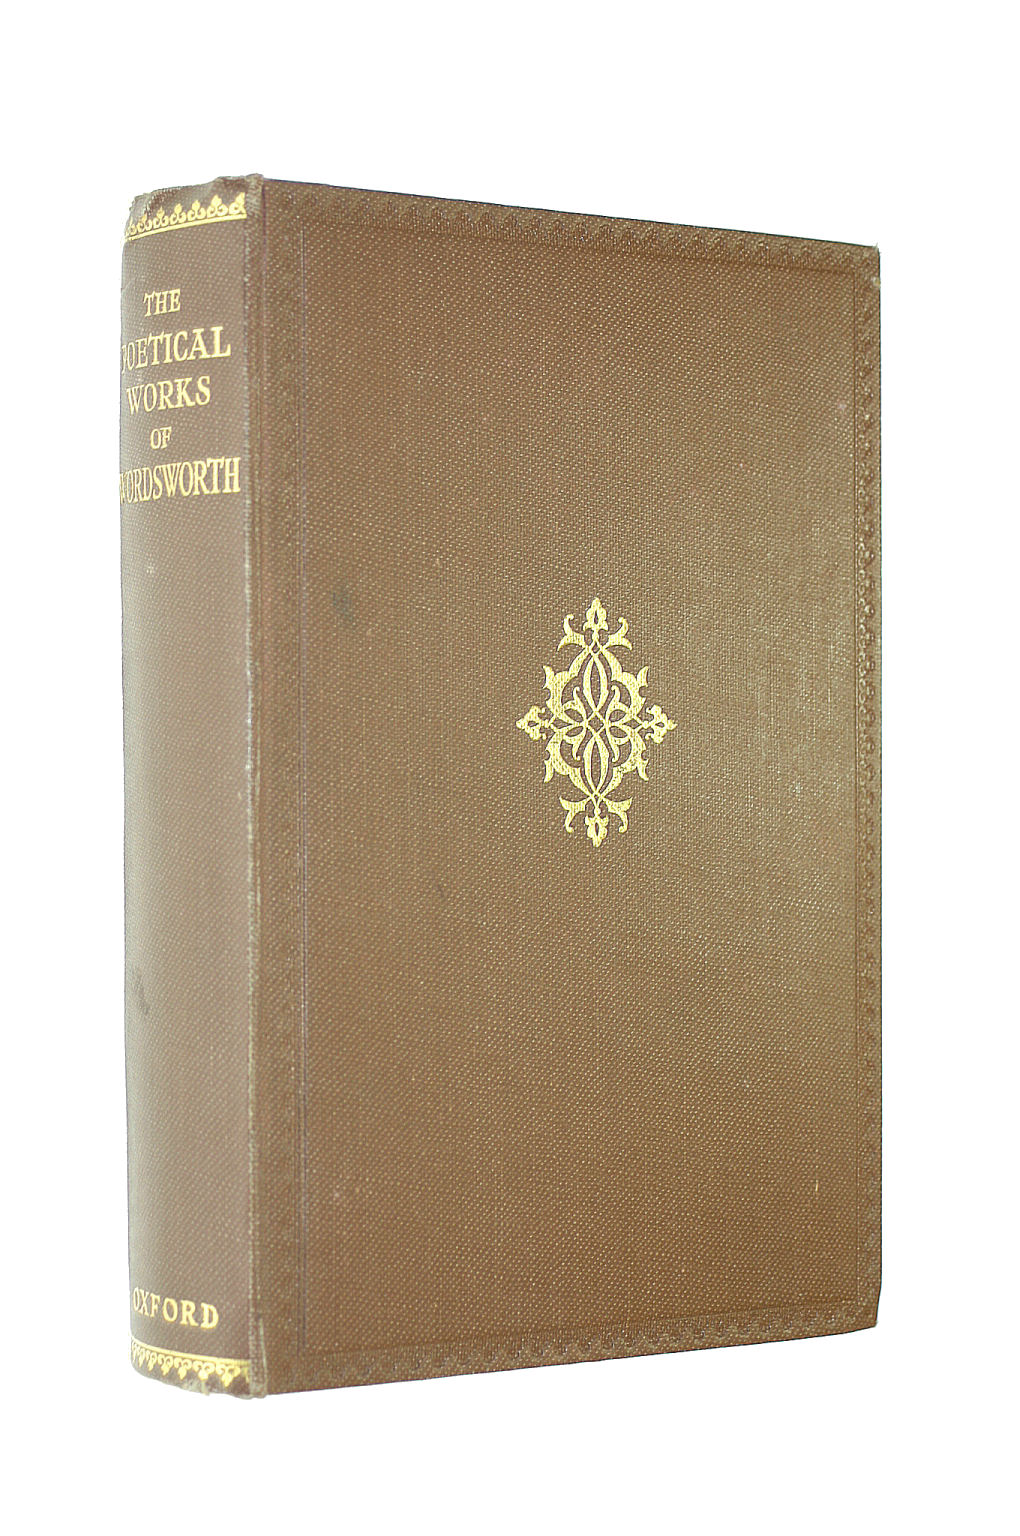 Image for The Poems Of Wordsworth, With Introduction And Notes